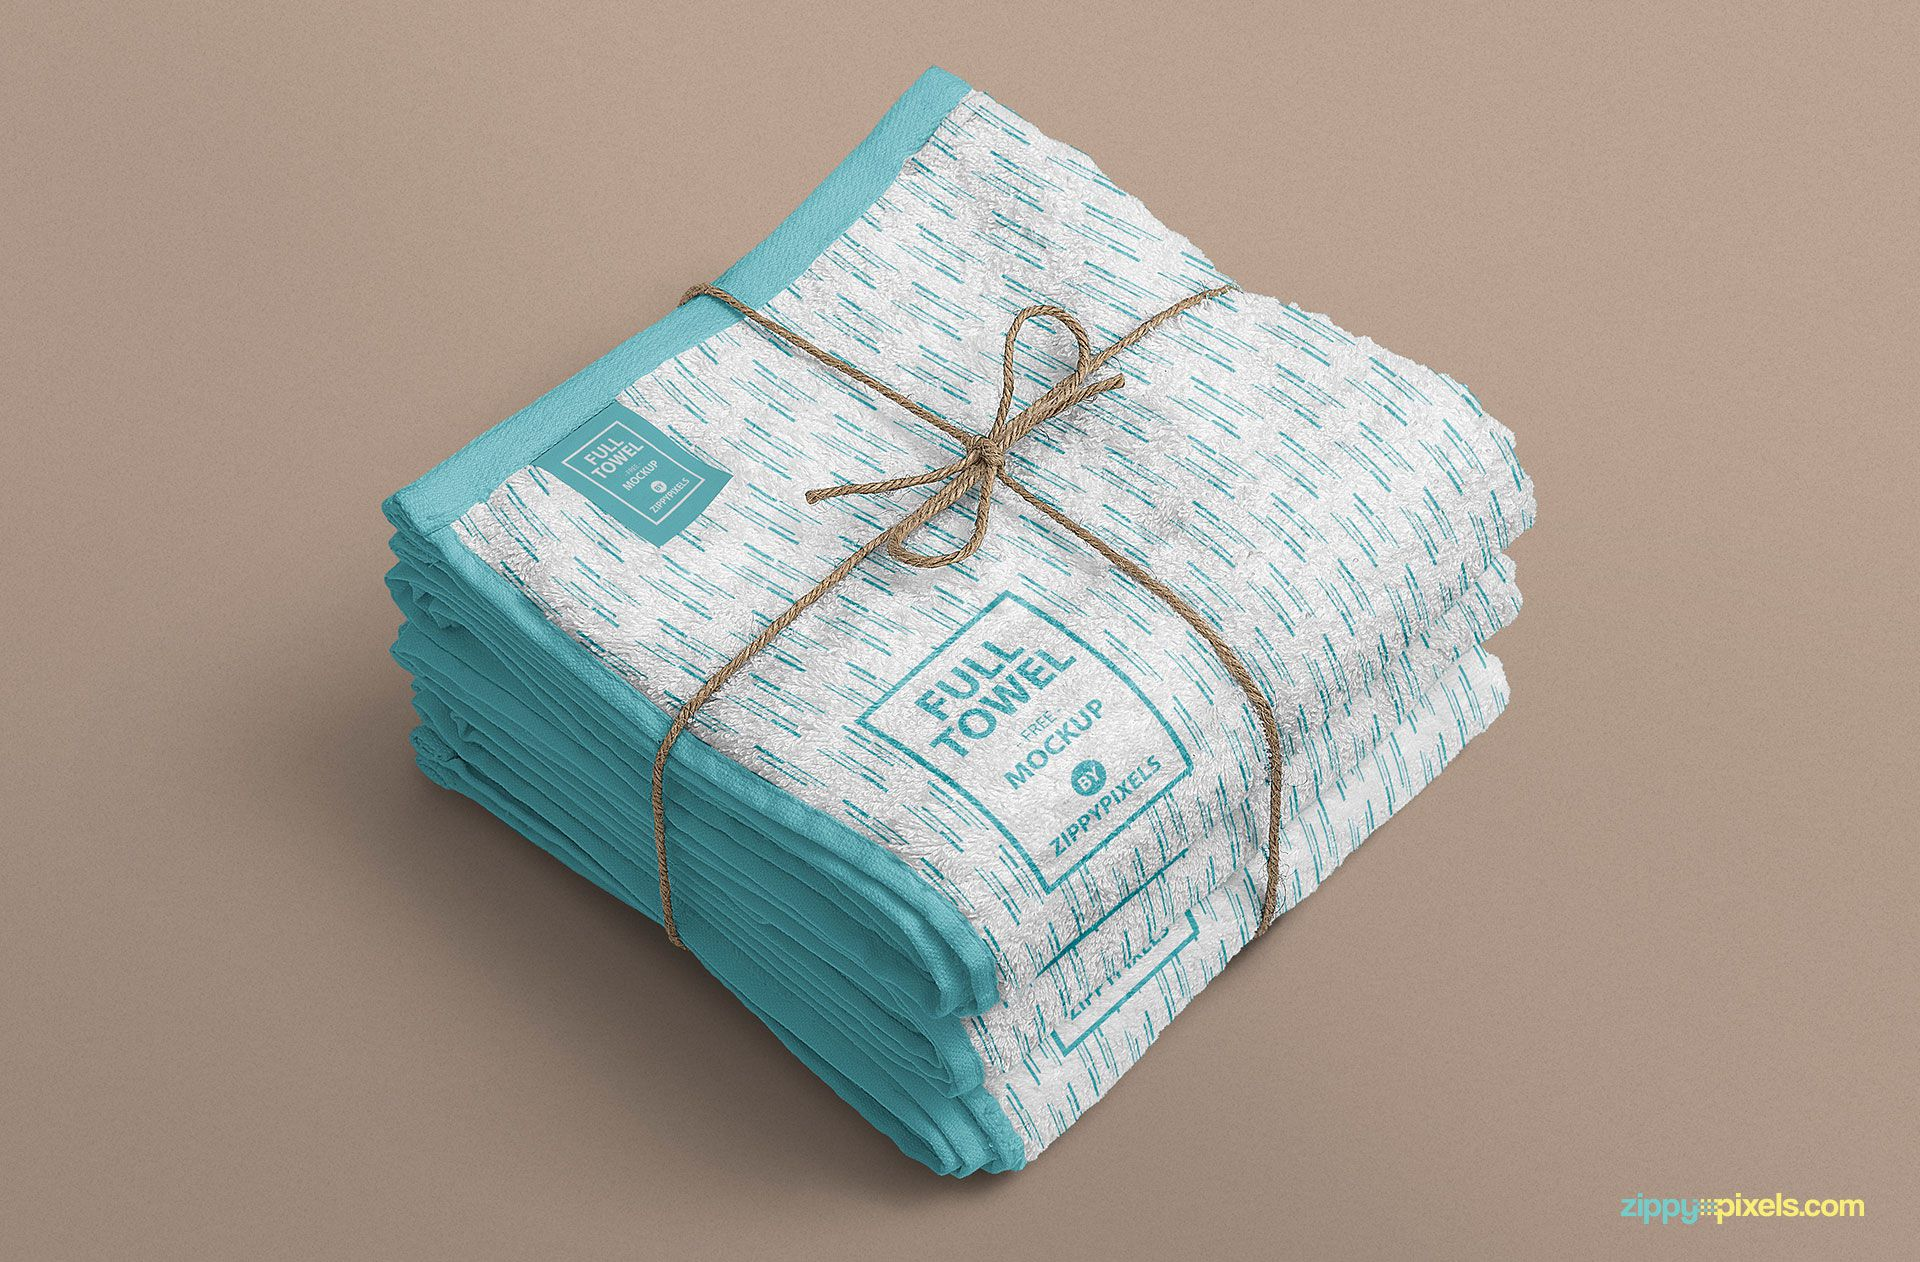 A bundle of three towels mockup.